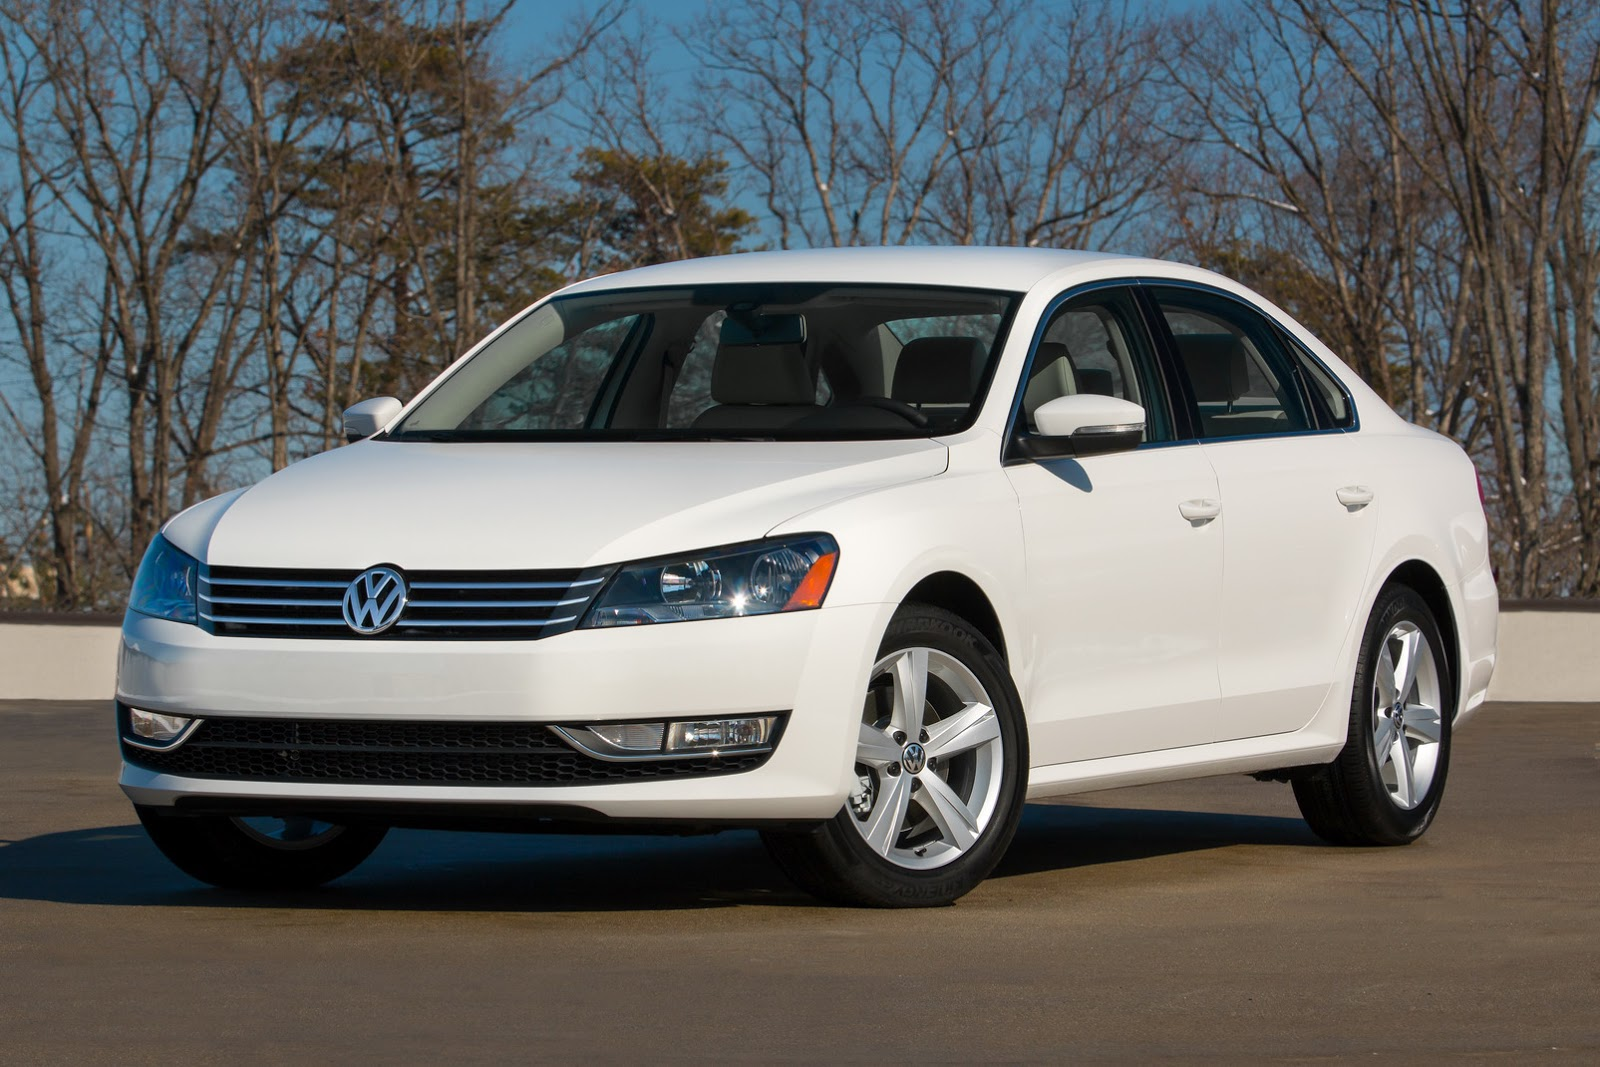 Vw S New 2015 Passat Limited Edition Is Anything But That